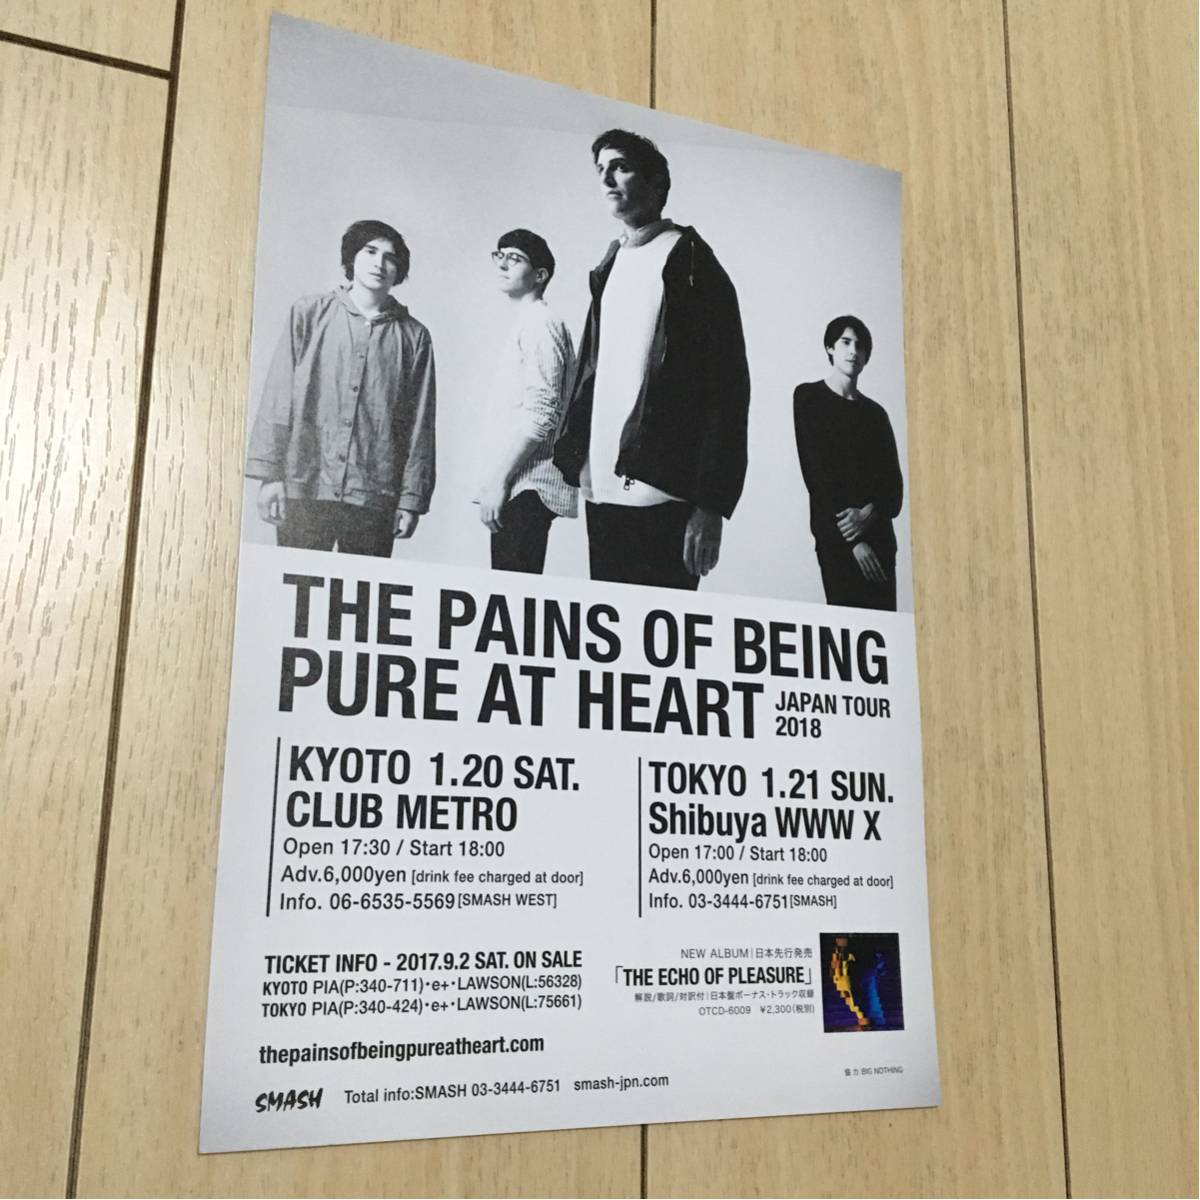 the pains of being pure at heart ライブ 来日 告知 チラシ 2018 ザ・ペインズ・オブ・ビーイング・ピュア・アット・ハート japan tour